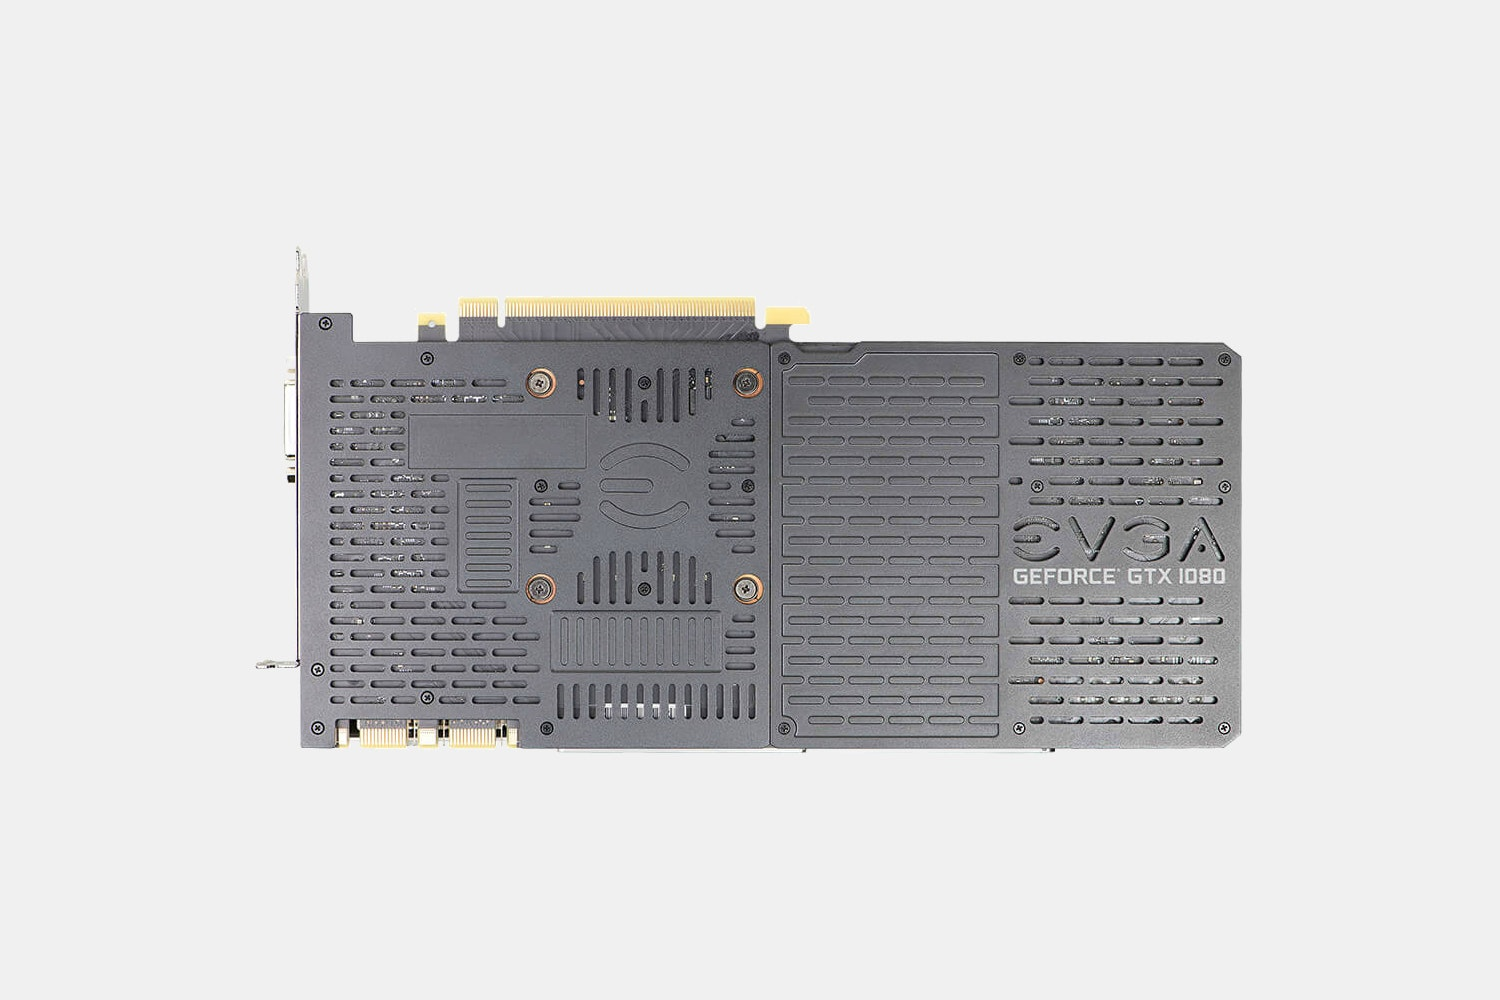 EVGA Geforce GTX 1080 FTW2/FTW DT Gaming 8GB